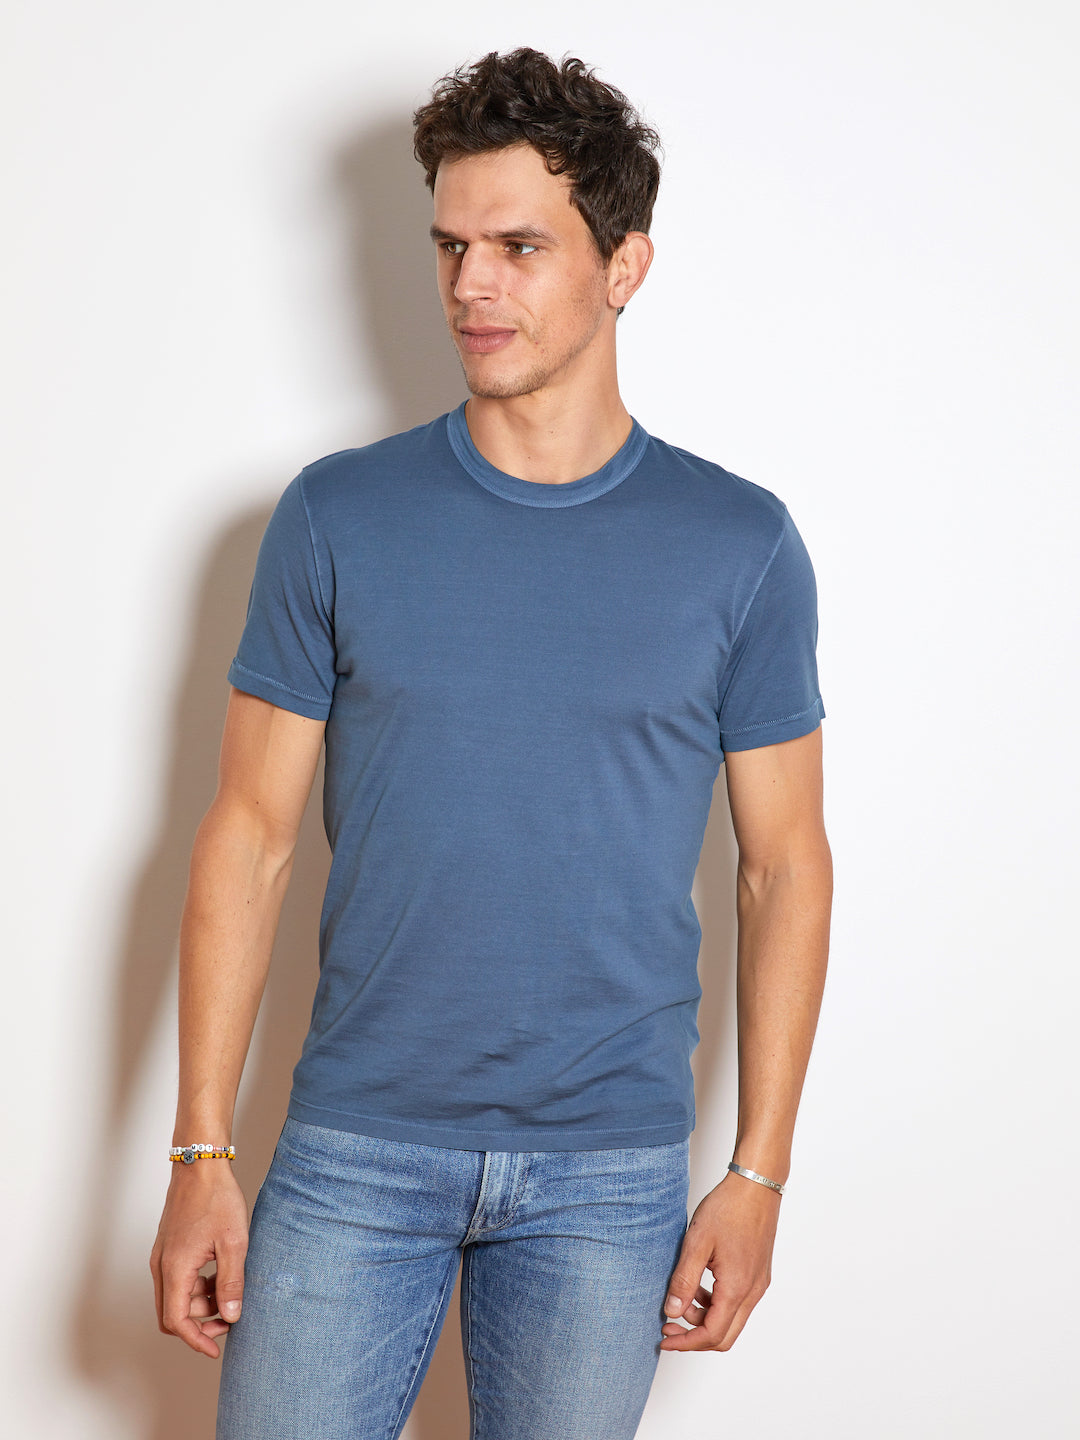 TEN C Knit Mako Jersey Short Sleeve Crewneck T-Shirt, Blue